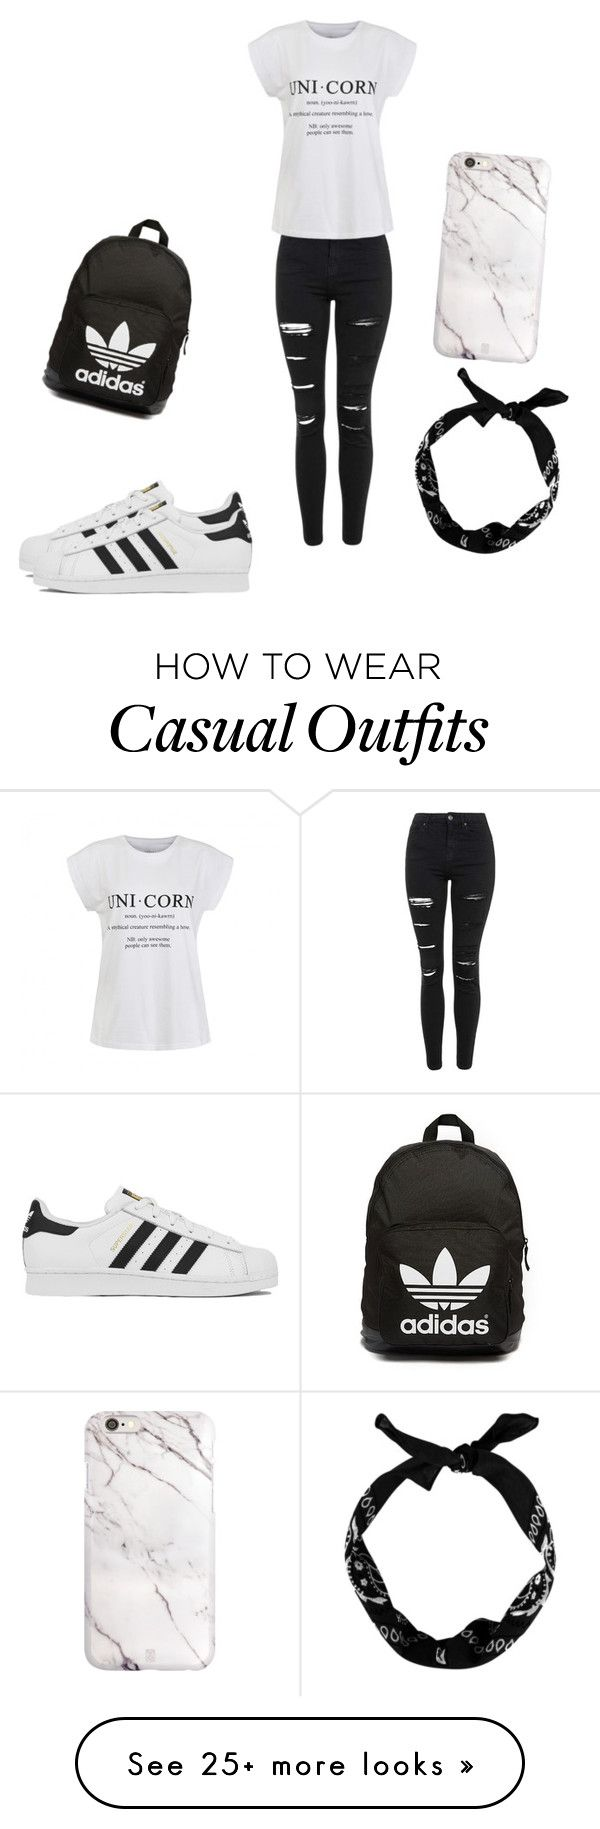 """casual"" by elizagaspar on Polyvore featuring Topshop, Ally Fashion, adidas, adidas Originals, women's clothing, women's fashion, women, female, woman and misses"